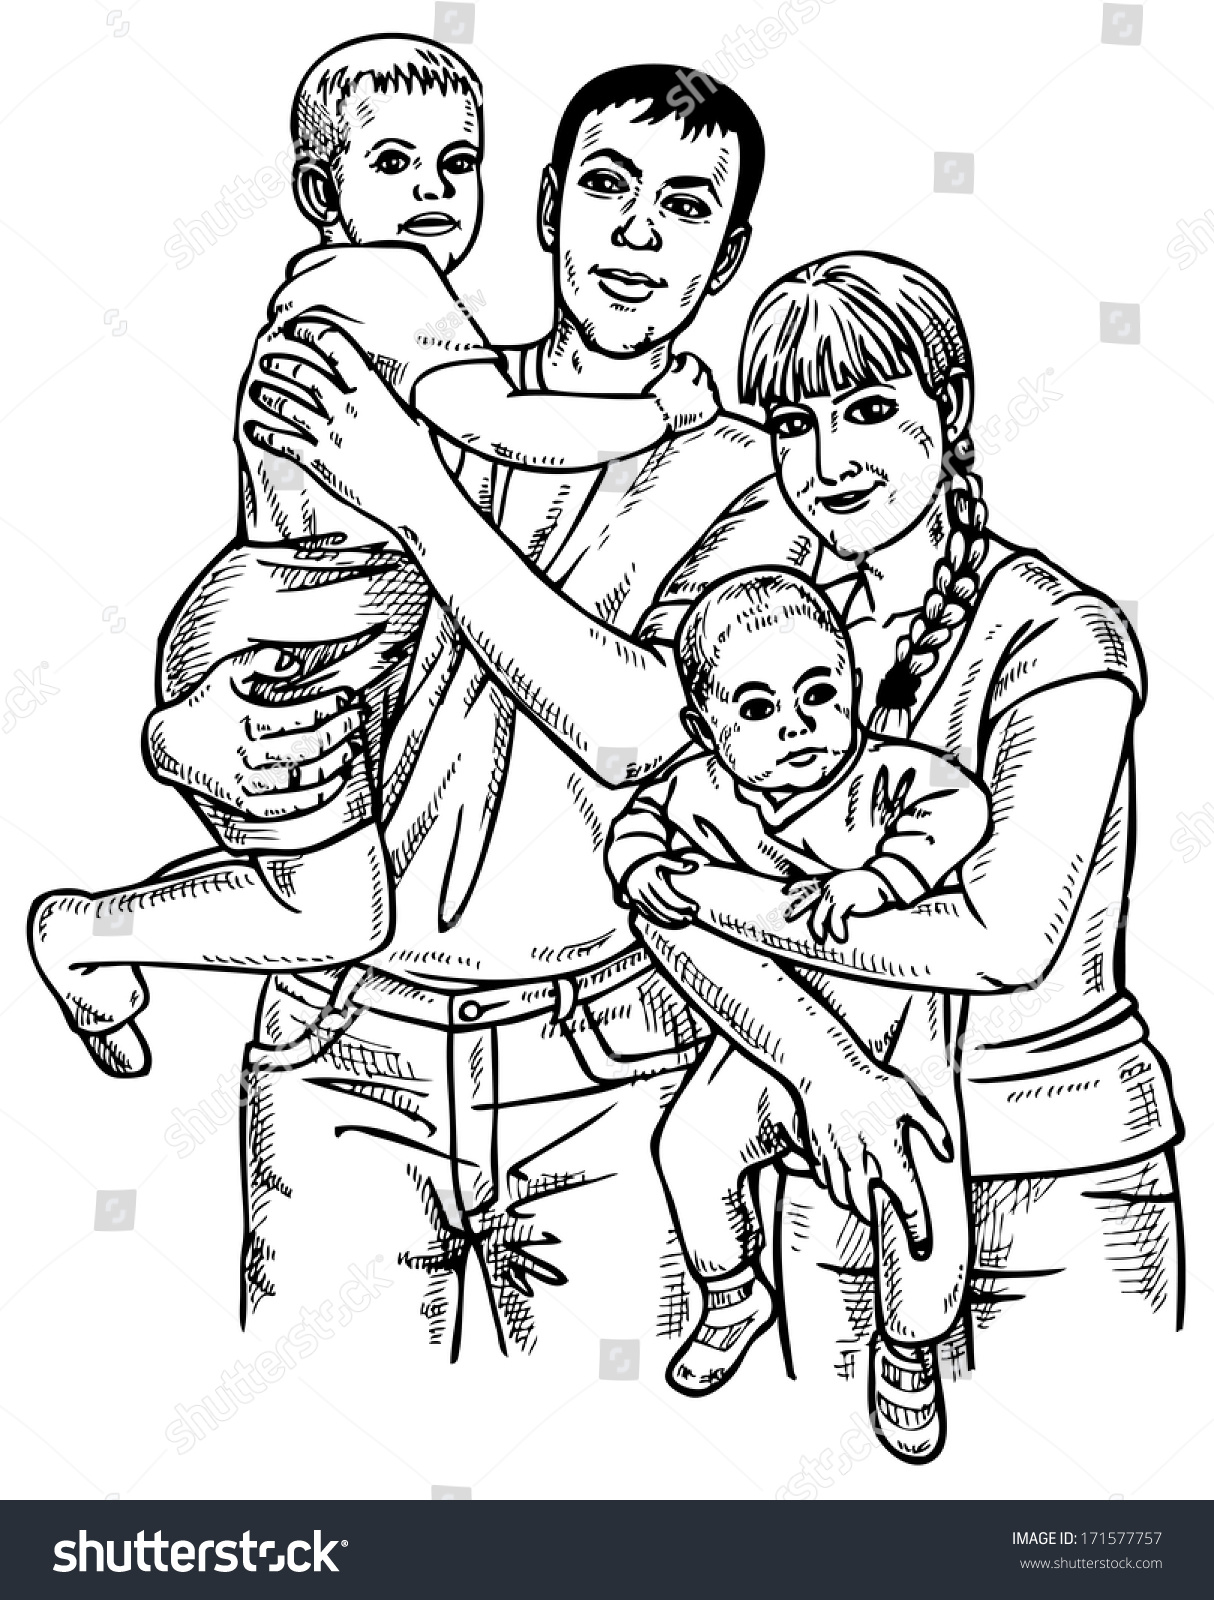 licensing parents essay Parent licensing would remove protecting the welfare of children from the criminal arena of perpetrator and victim after children have been damaged to the prevention and treatment arena, in which.